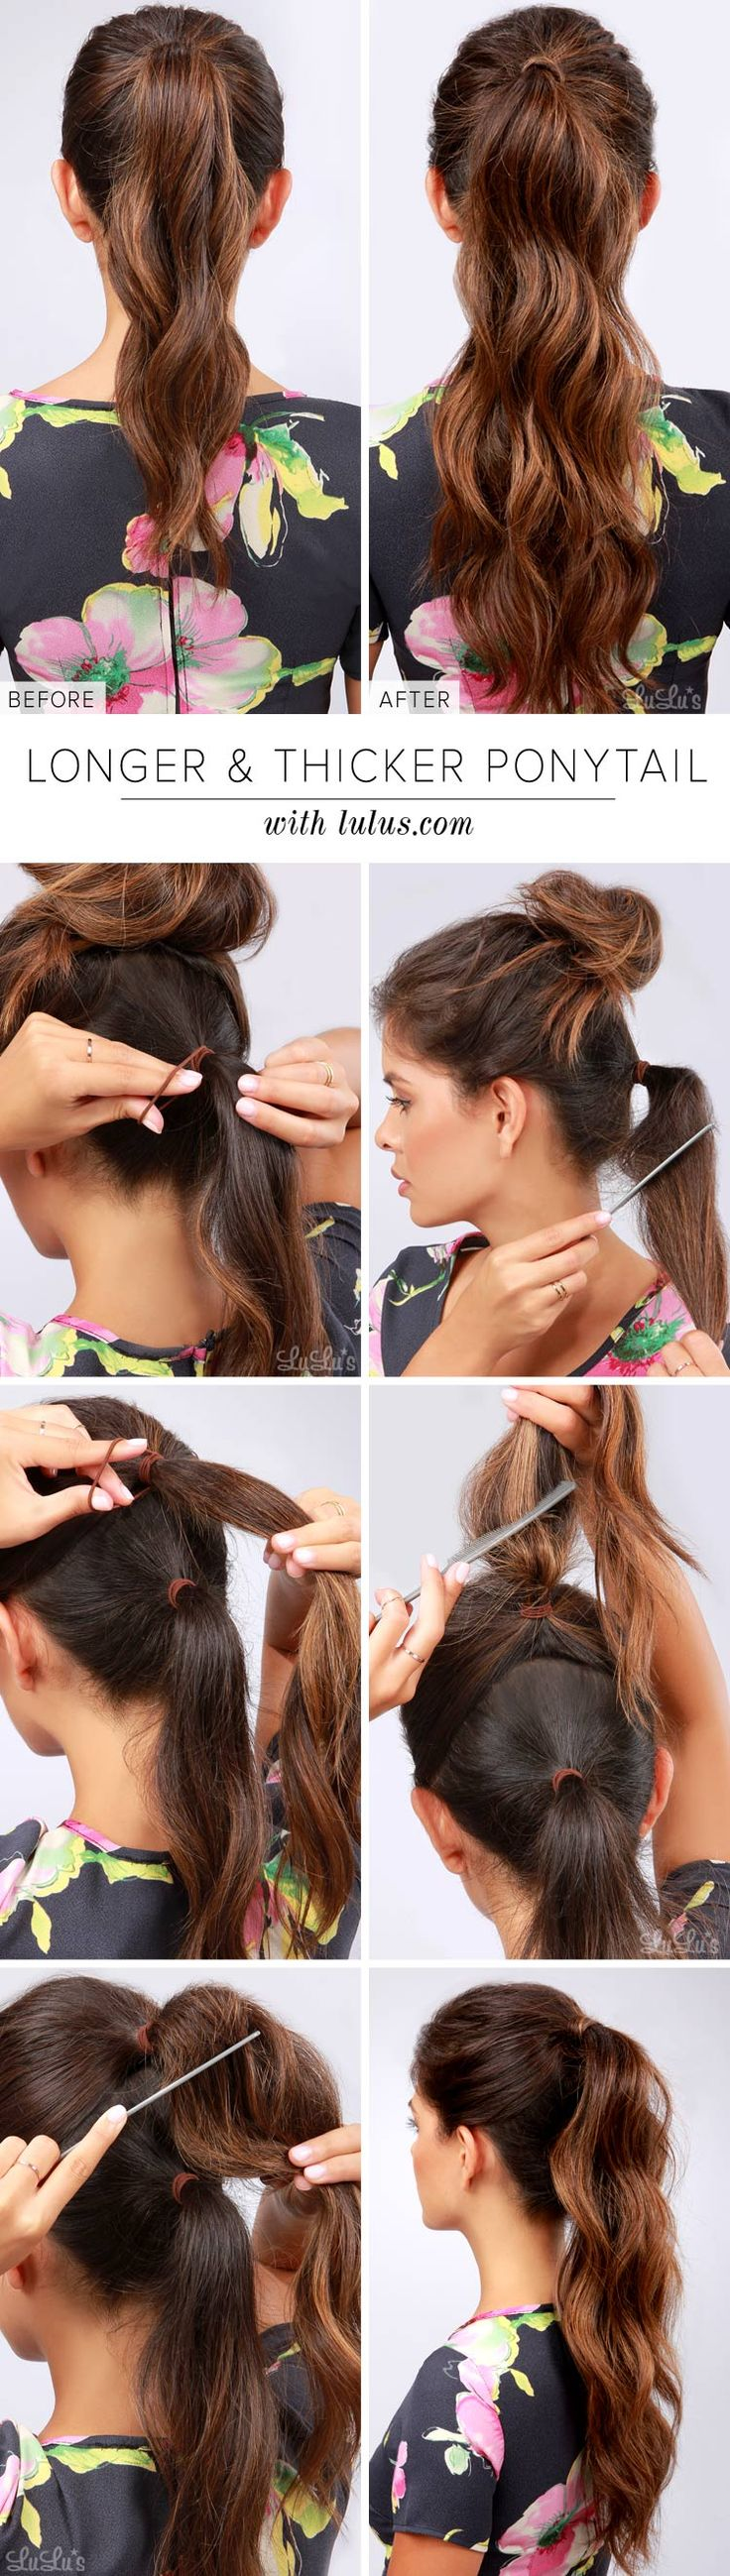 Trick by making thinker and longer ponytail in Minutes!!